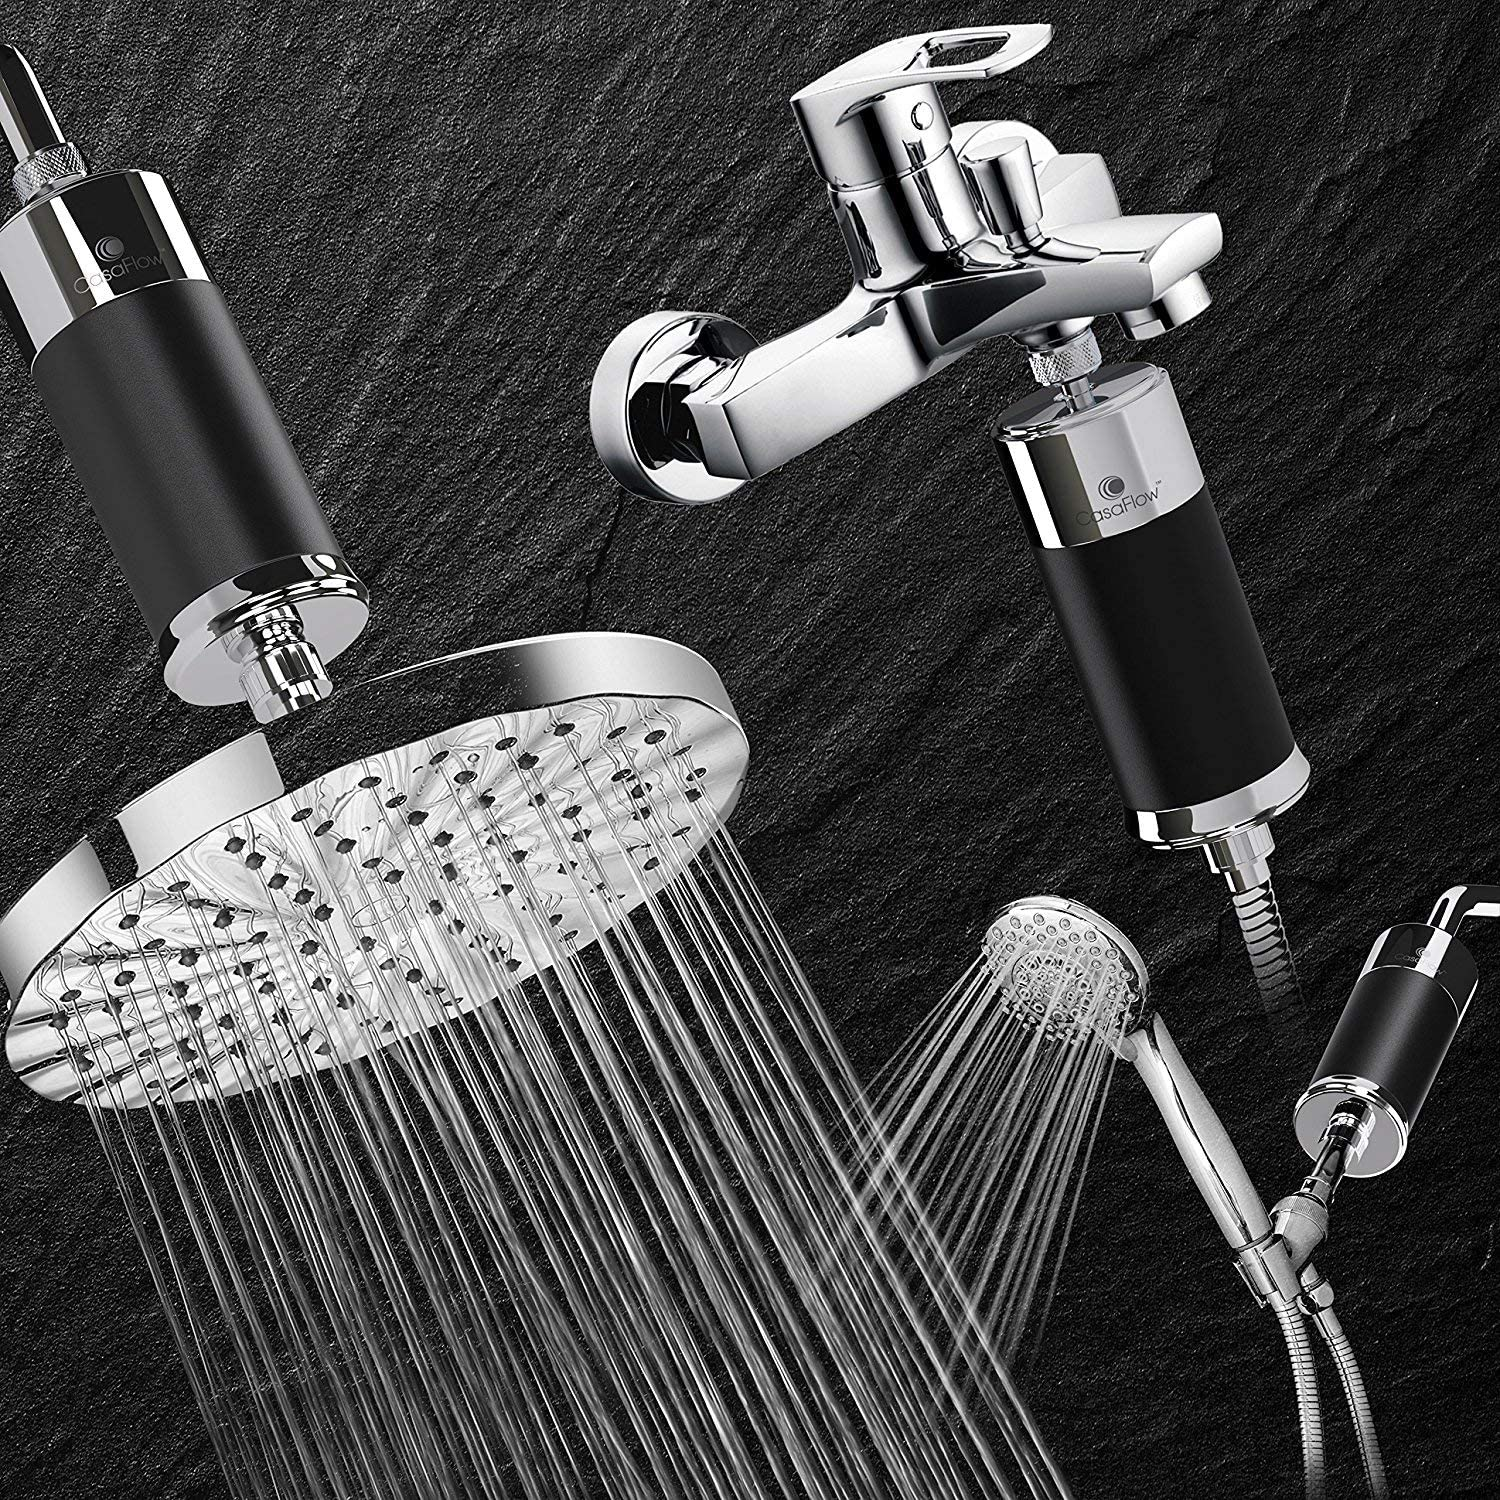 CasaFlow Shower Head Water Filter in real life